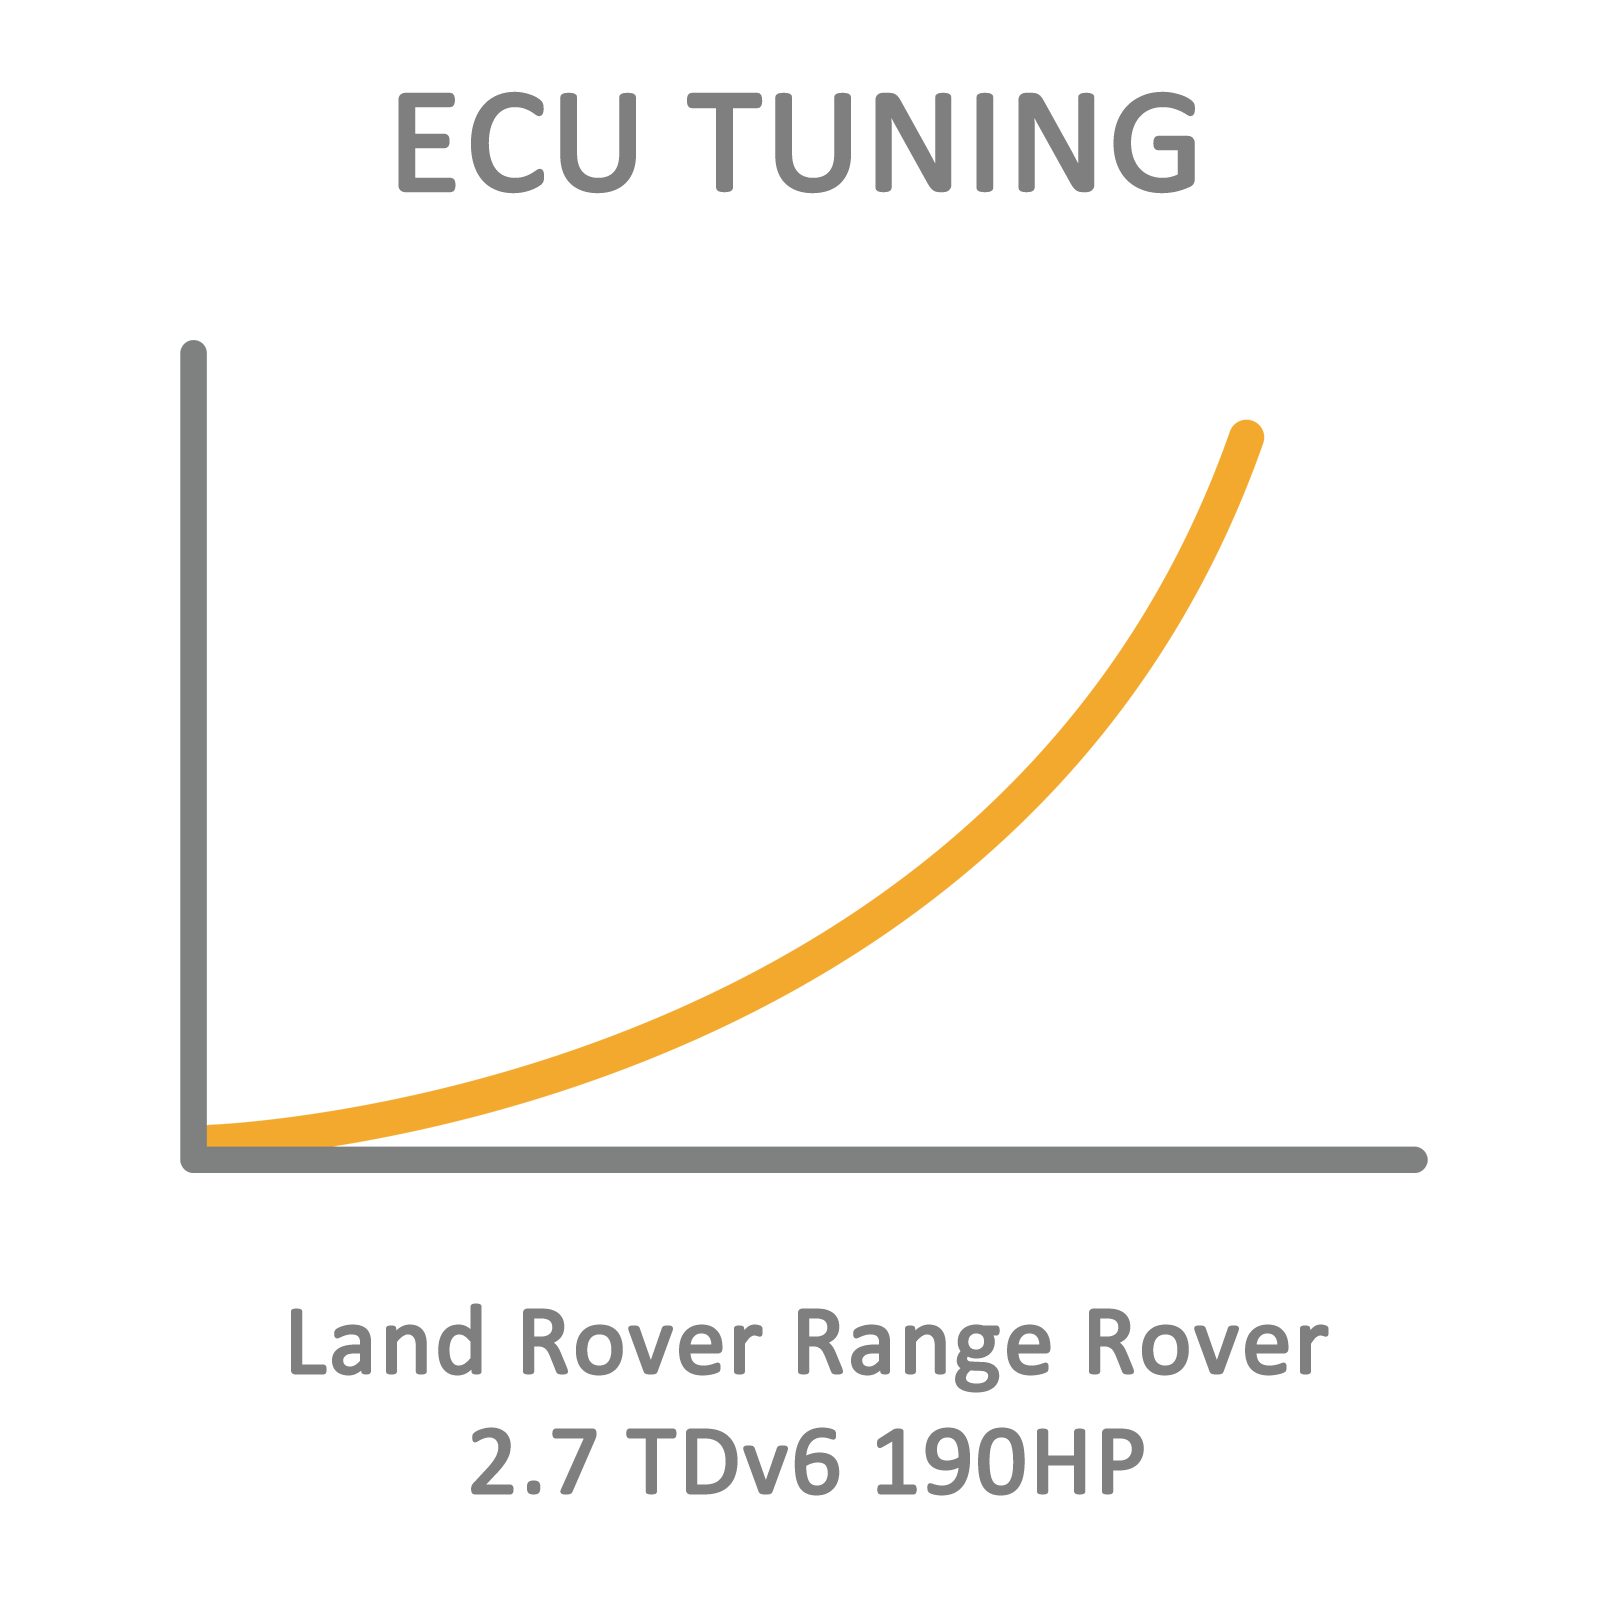 Land Rover Range Rover 2.7 TDv6 190HP ECU Tuning Remapping